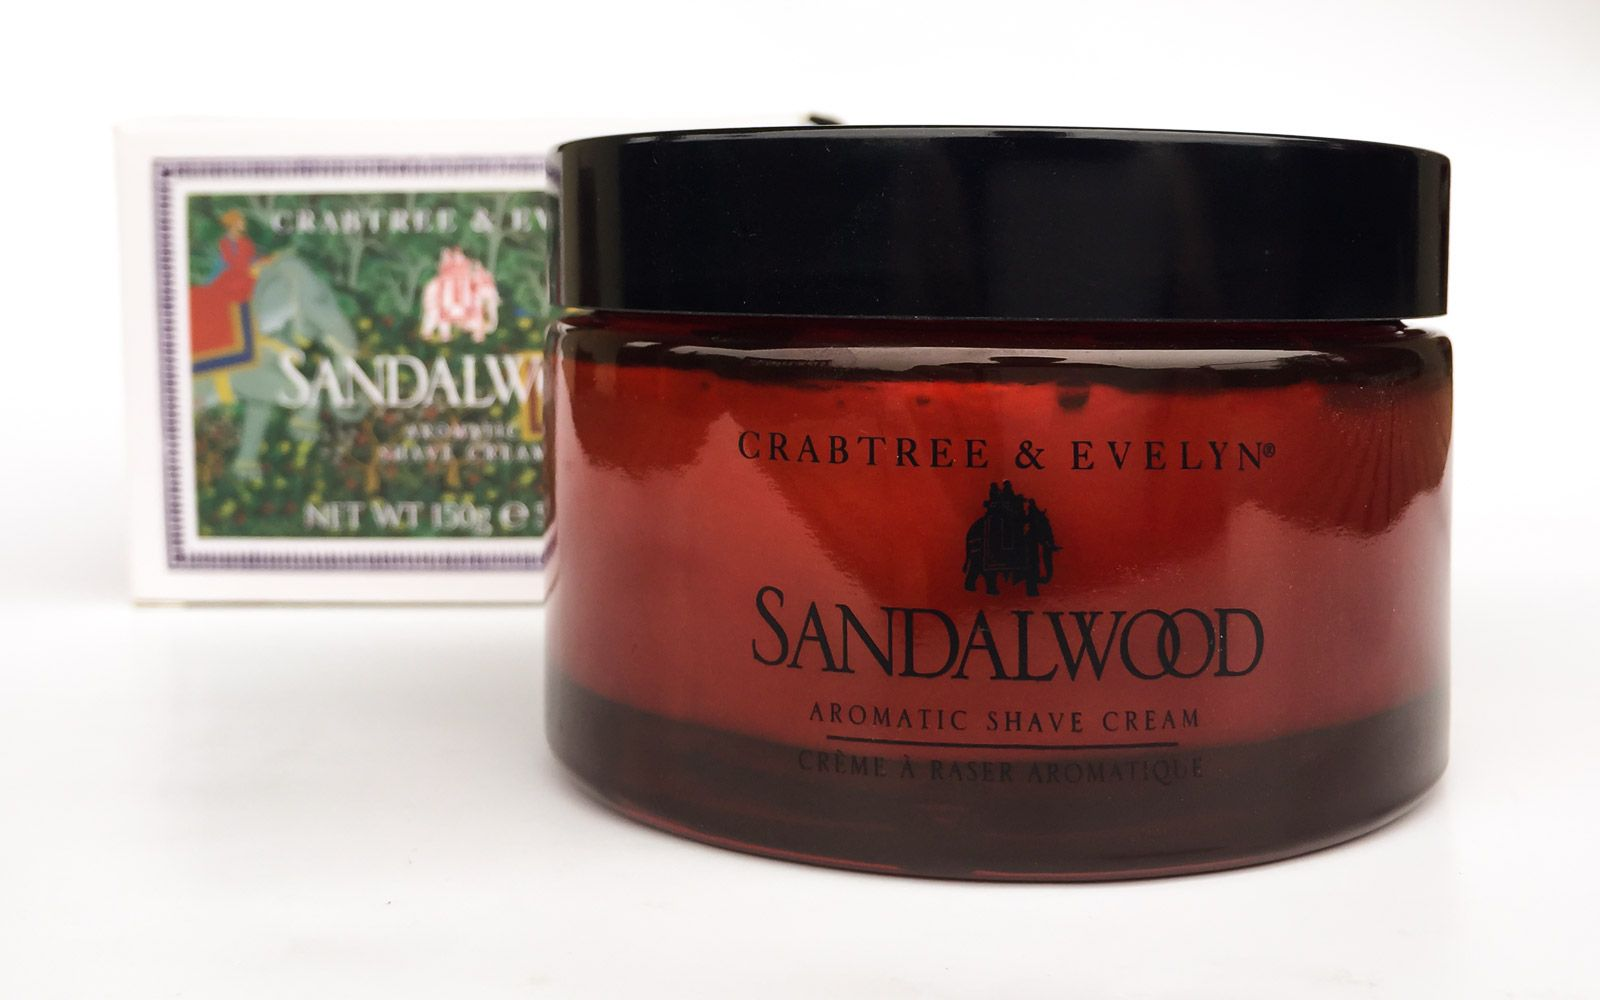 Opakowanie kremu do golenia Crabtree & Evelyn Sandalwood Aromatic Shave Cream